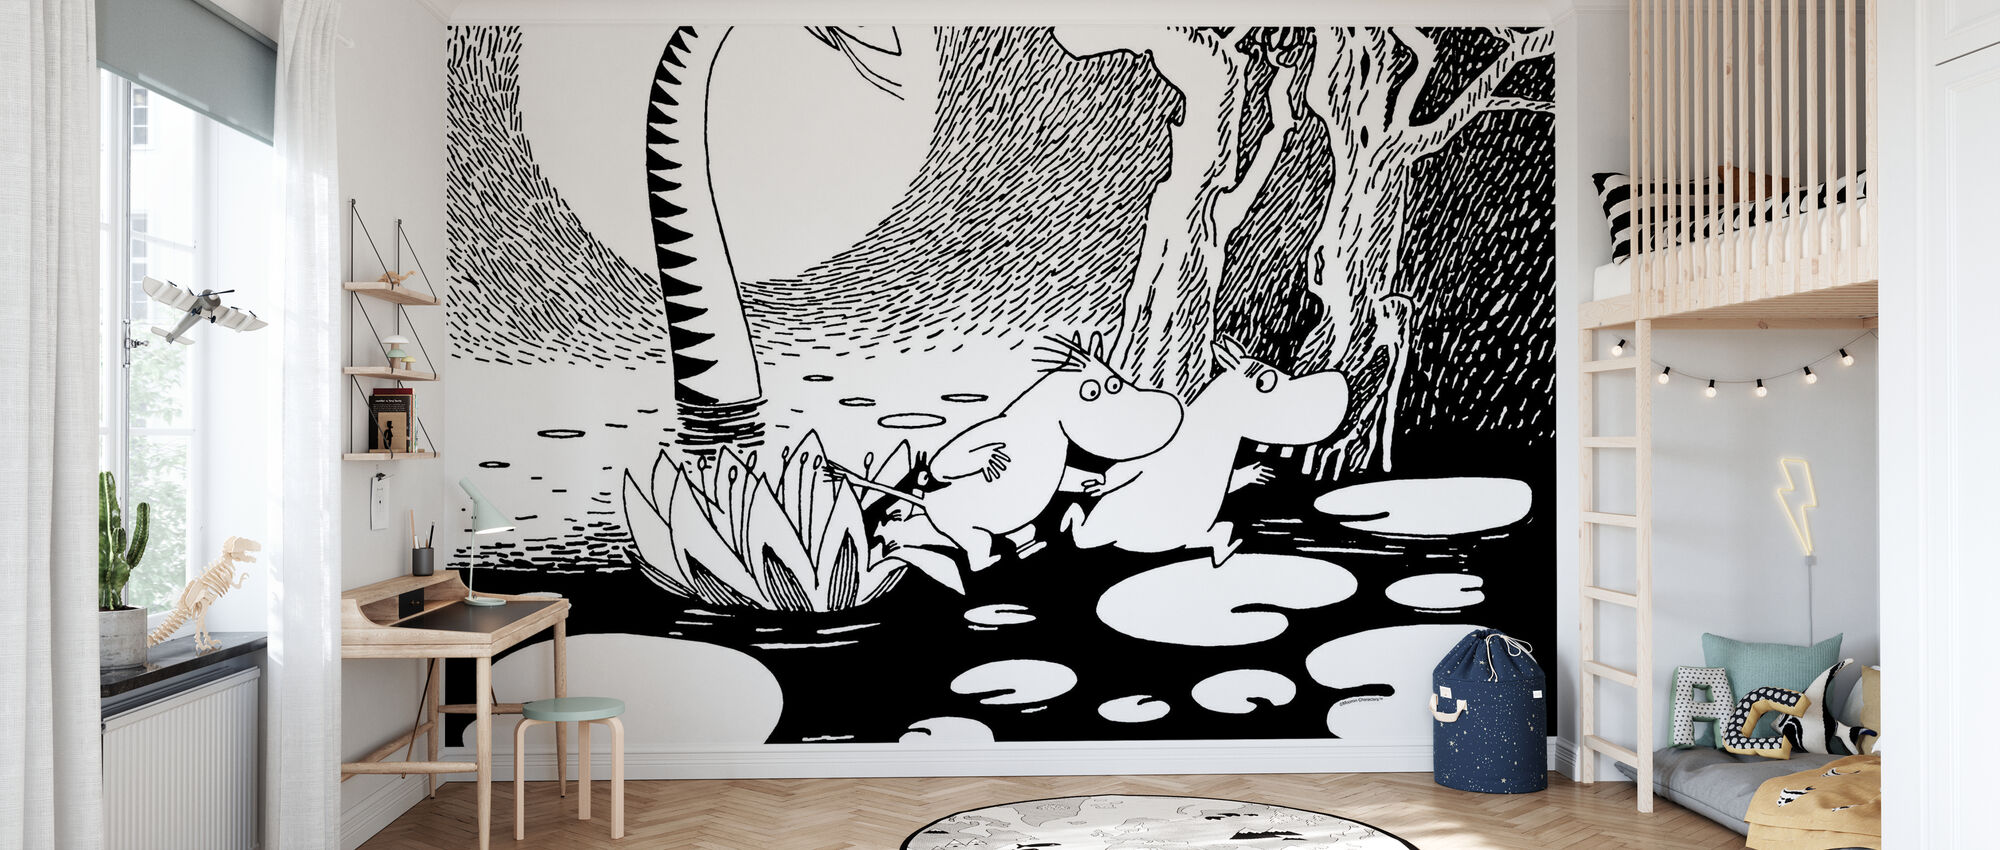 Moomin and Snorkmaiden and the Giant Snake - Wallpaper - Kids Room